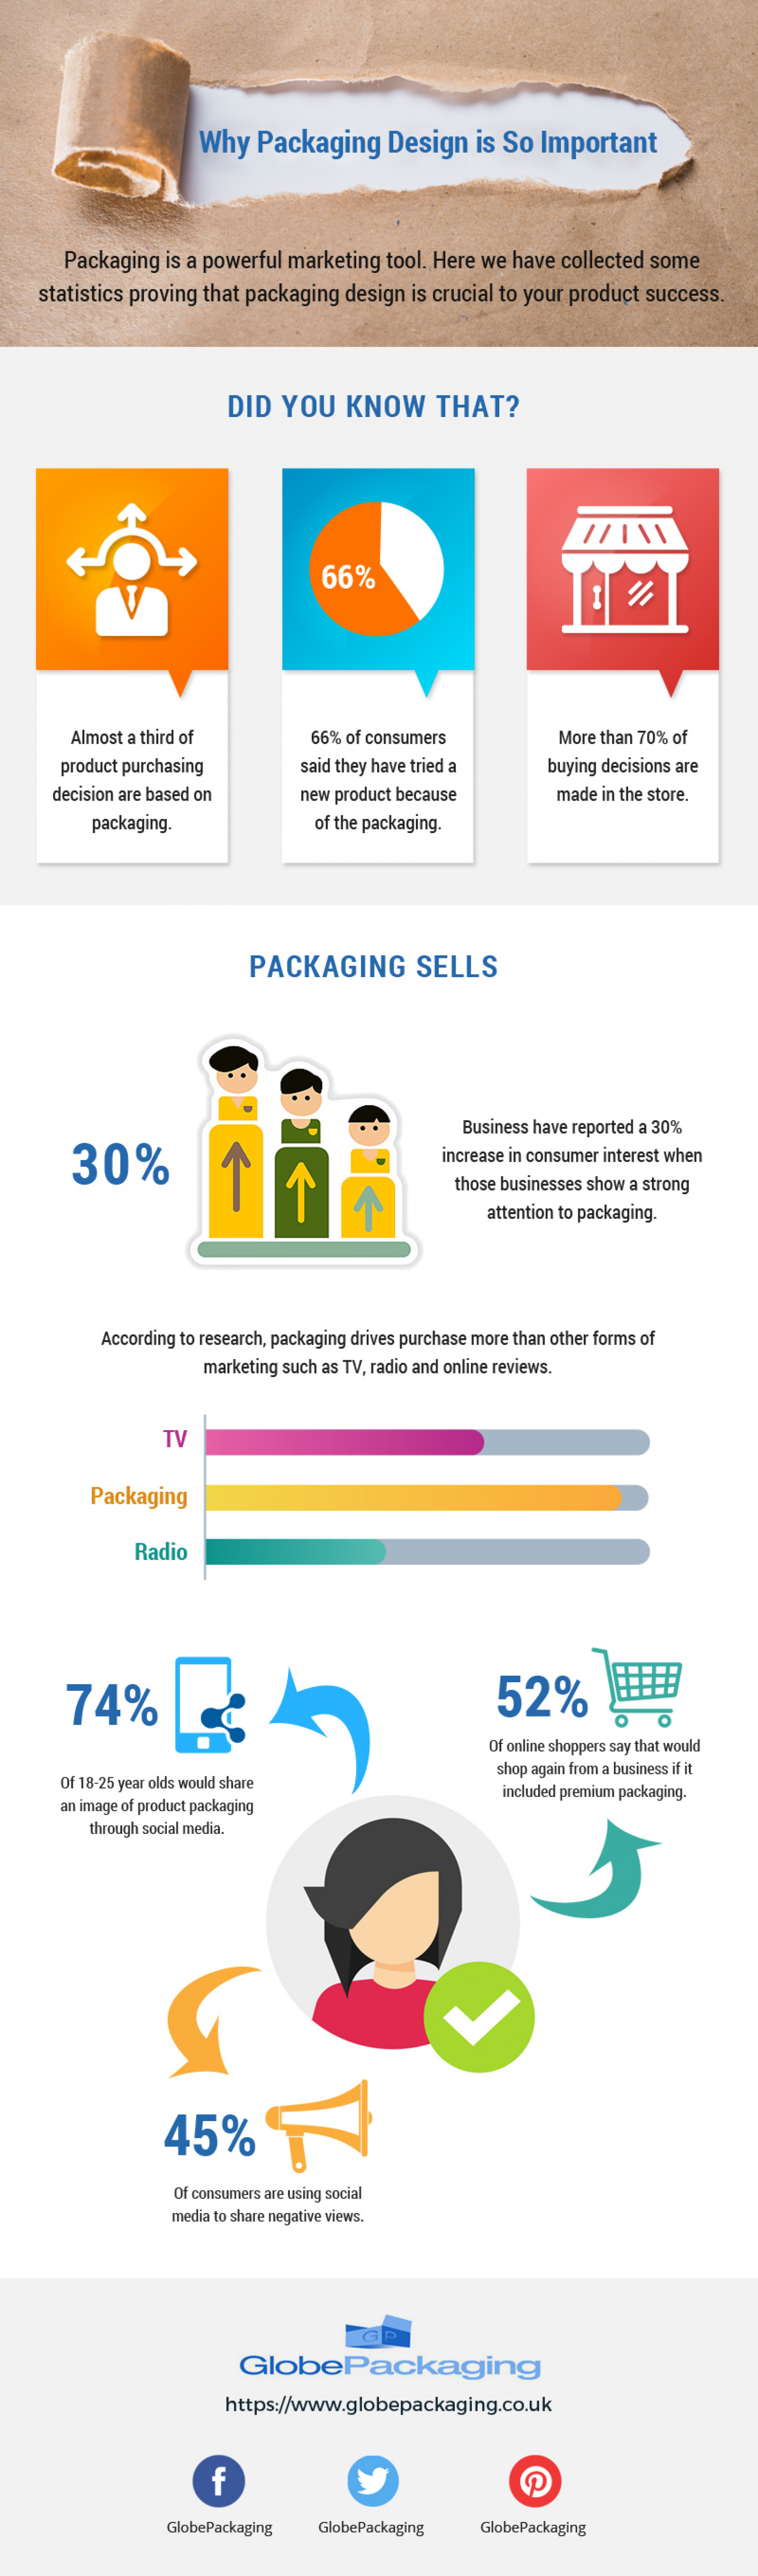 Why Packaging Design is So Important? Infographic